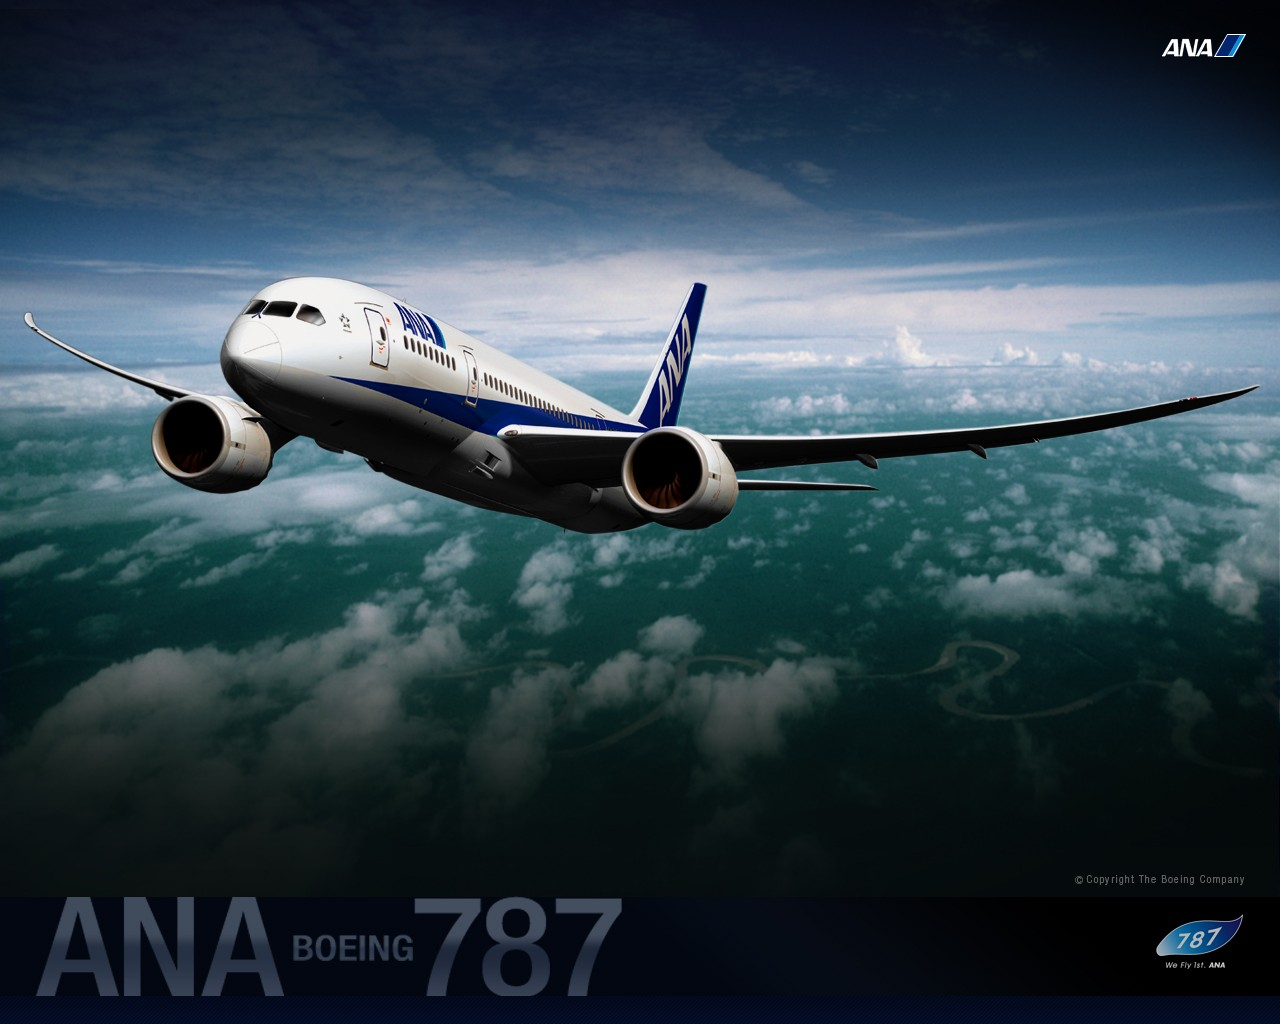 ANA All Nippon Airways Boeing Dreamliner wallpaper 30299